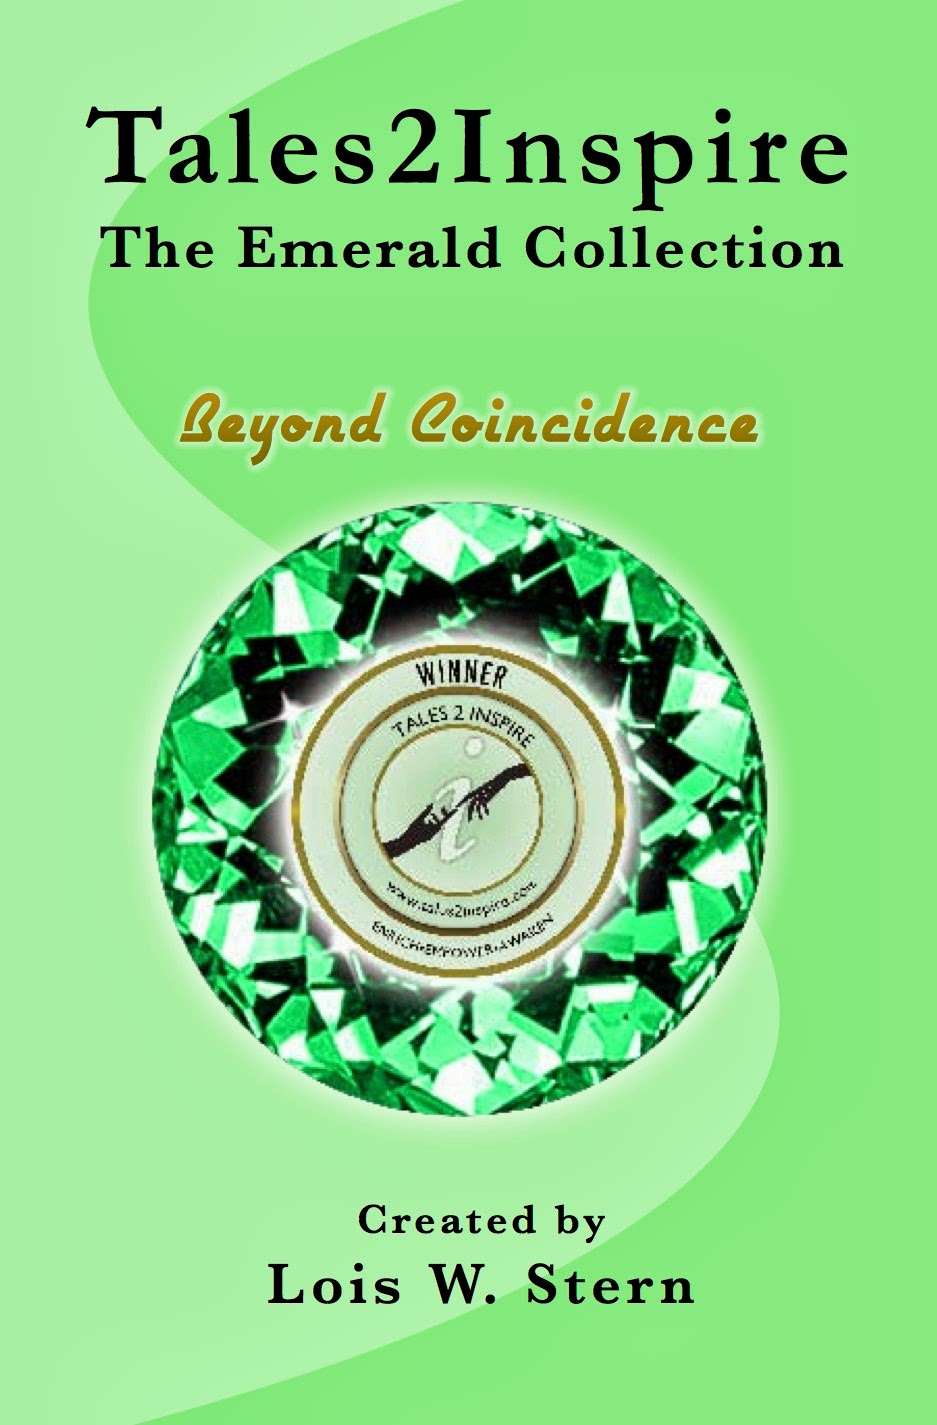 http://www.amazon.com/Tales2Inspire-Emerald-Collection-Beyond-Coincidence-ebook/dp/B00FW9PFUY/ref=sr_1_1?s=books&ie=UTF8&qid=1395779086&sr=1-1&keywords=lois+w.+stern